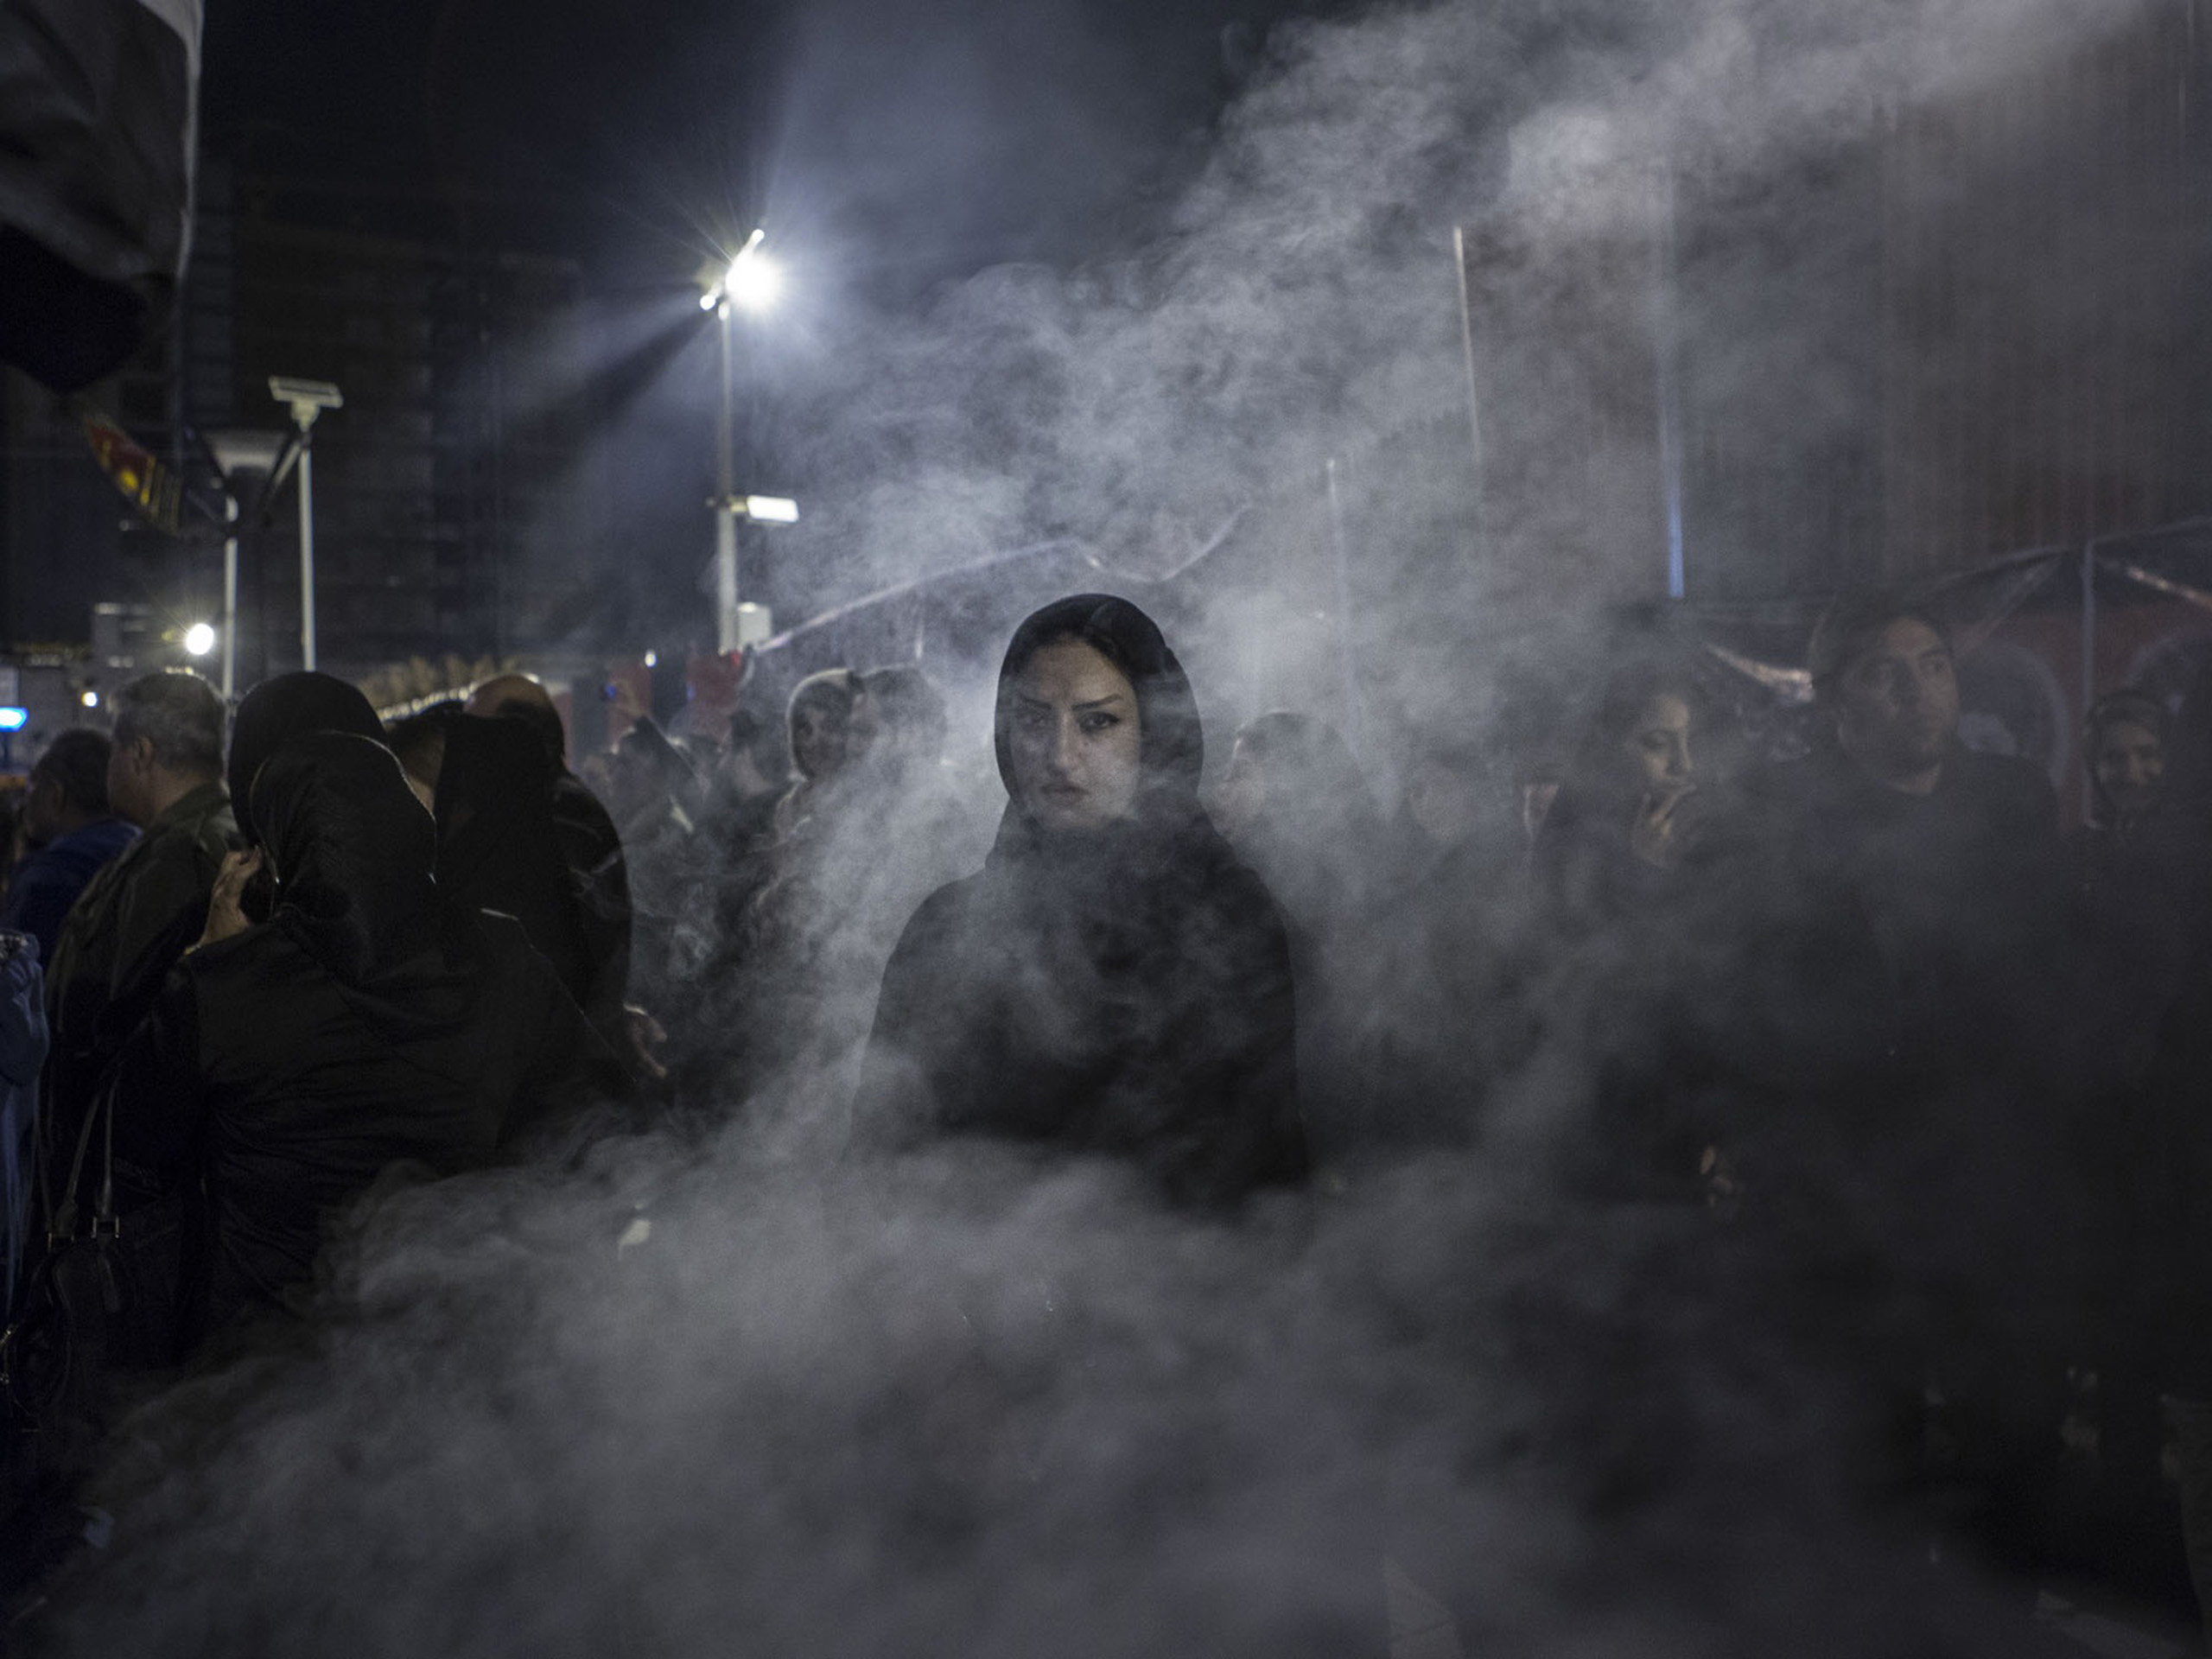 A woman in Tehran wreathed by the smoke of an herb burned during festivities marking the death of Hussein, the third Shi'ite imam.